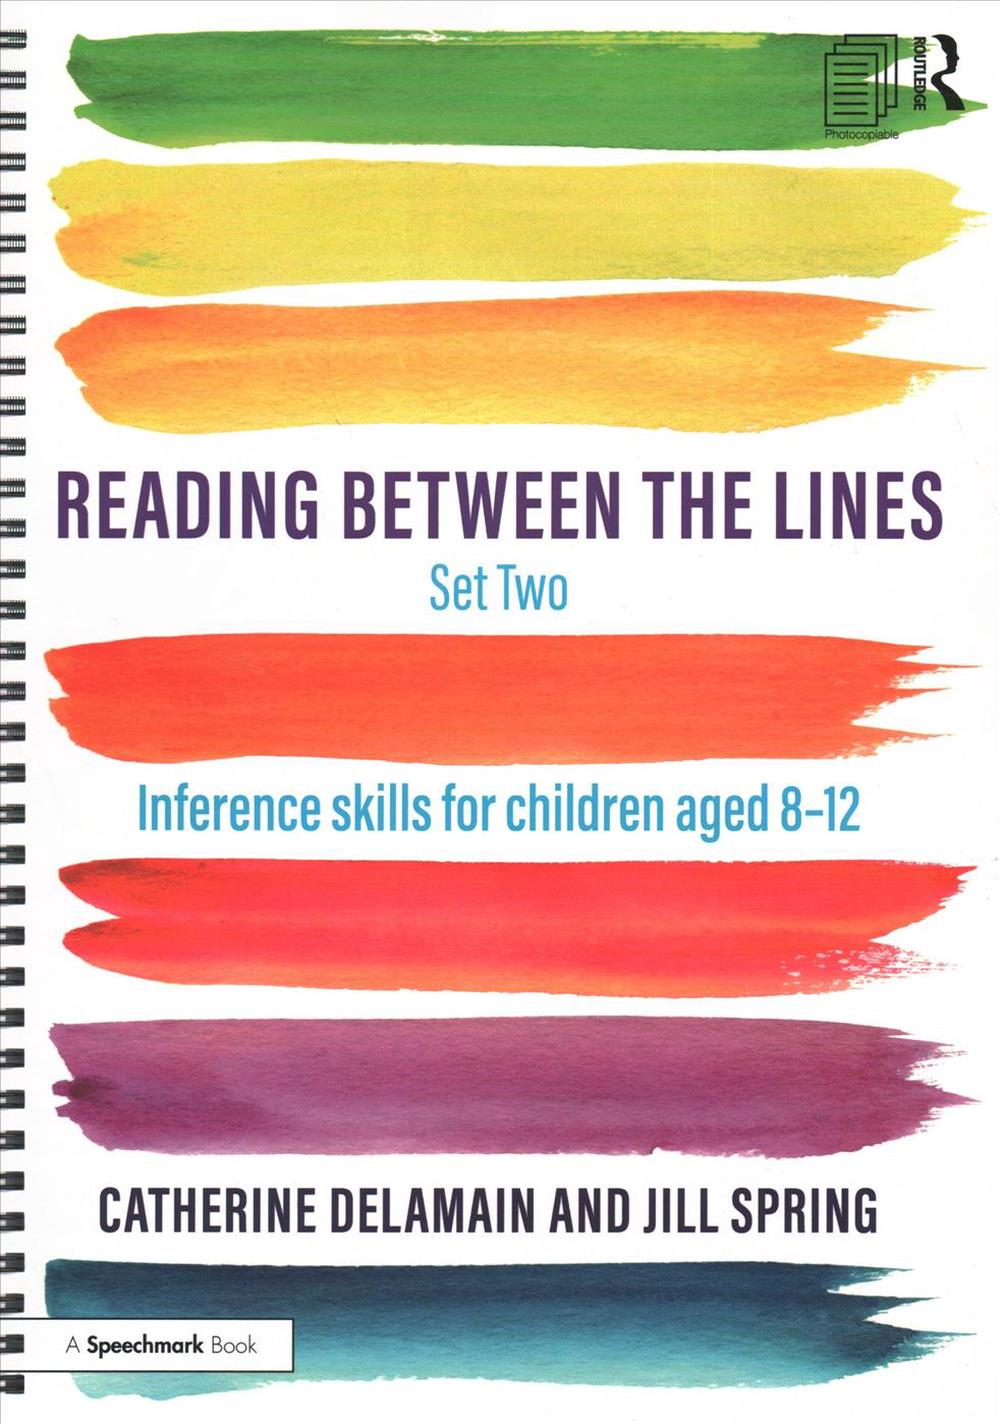 Reading Between the Lines Set TwoInference skills for children aged 8 - 12